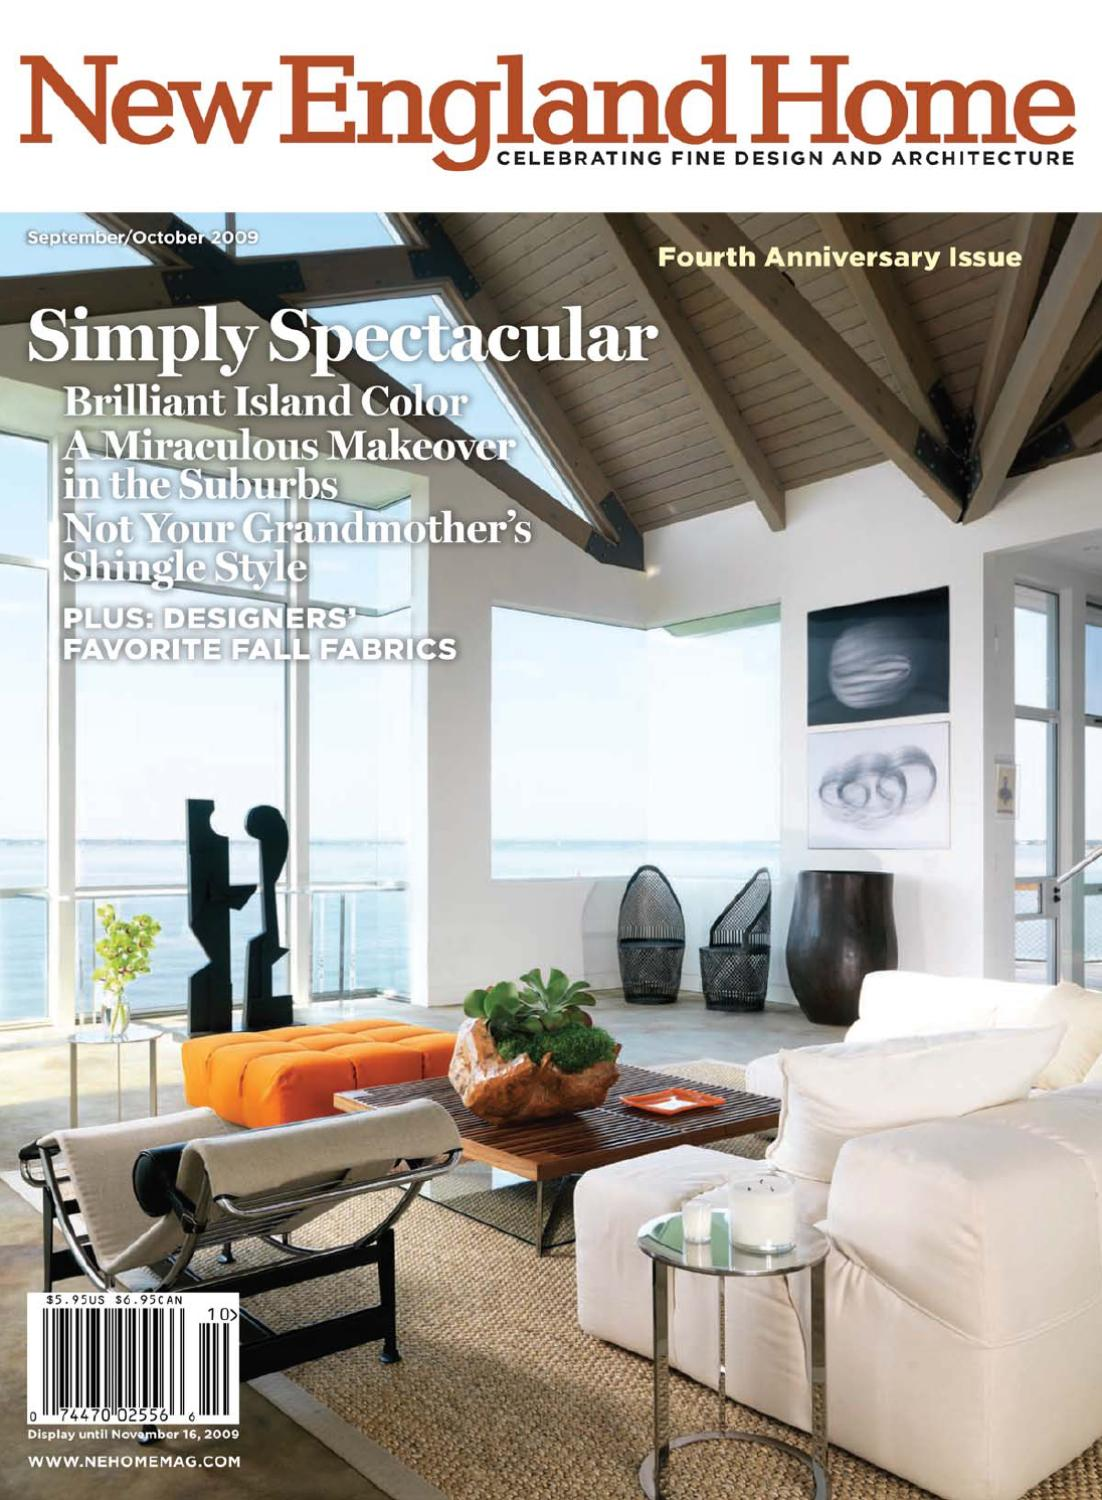 Groovy New England Home 2009 09 10 By Vladimir Gromadin Issuu Pdpeps Interior Chair Design Pdpepsorg